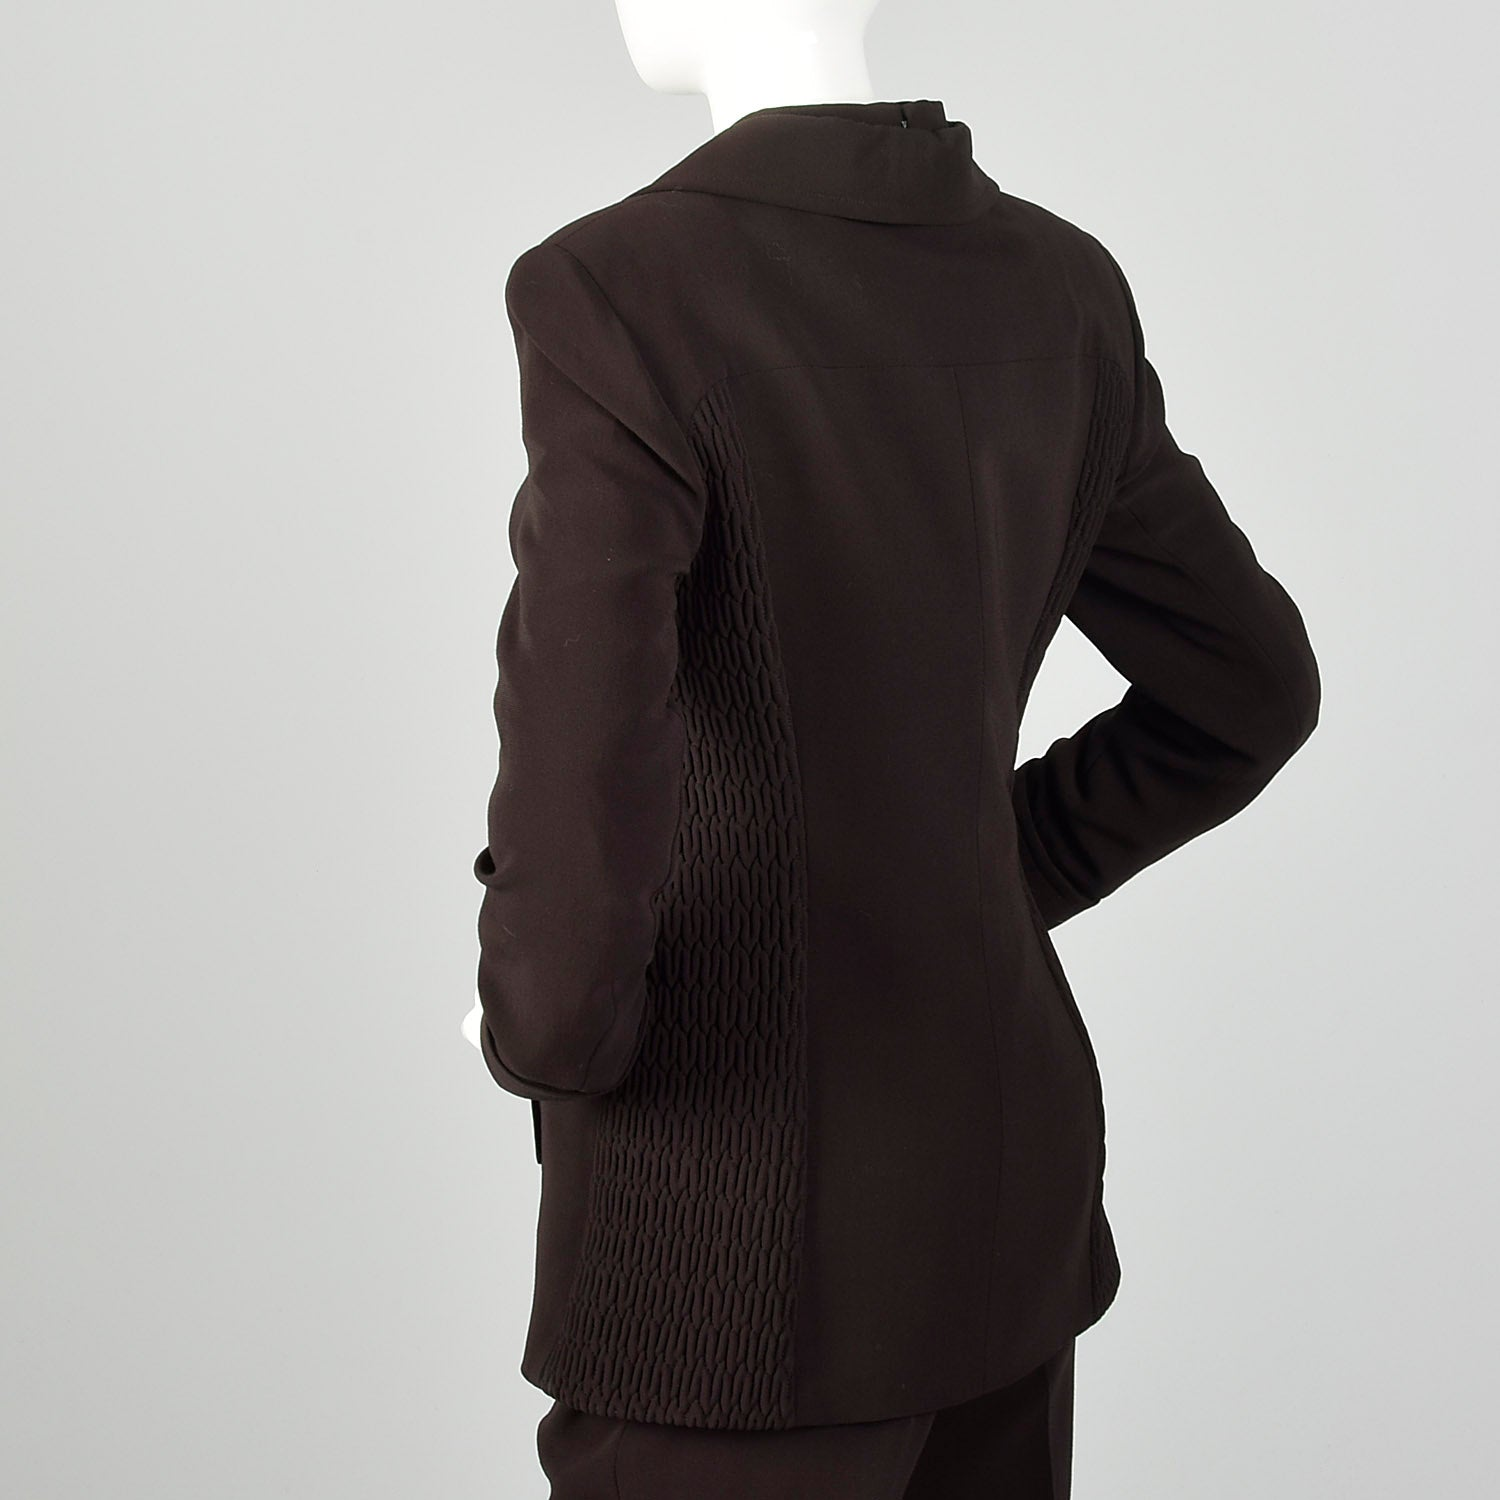 Medium Jacques Fath 1990s Brown Three Piece Suit